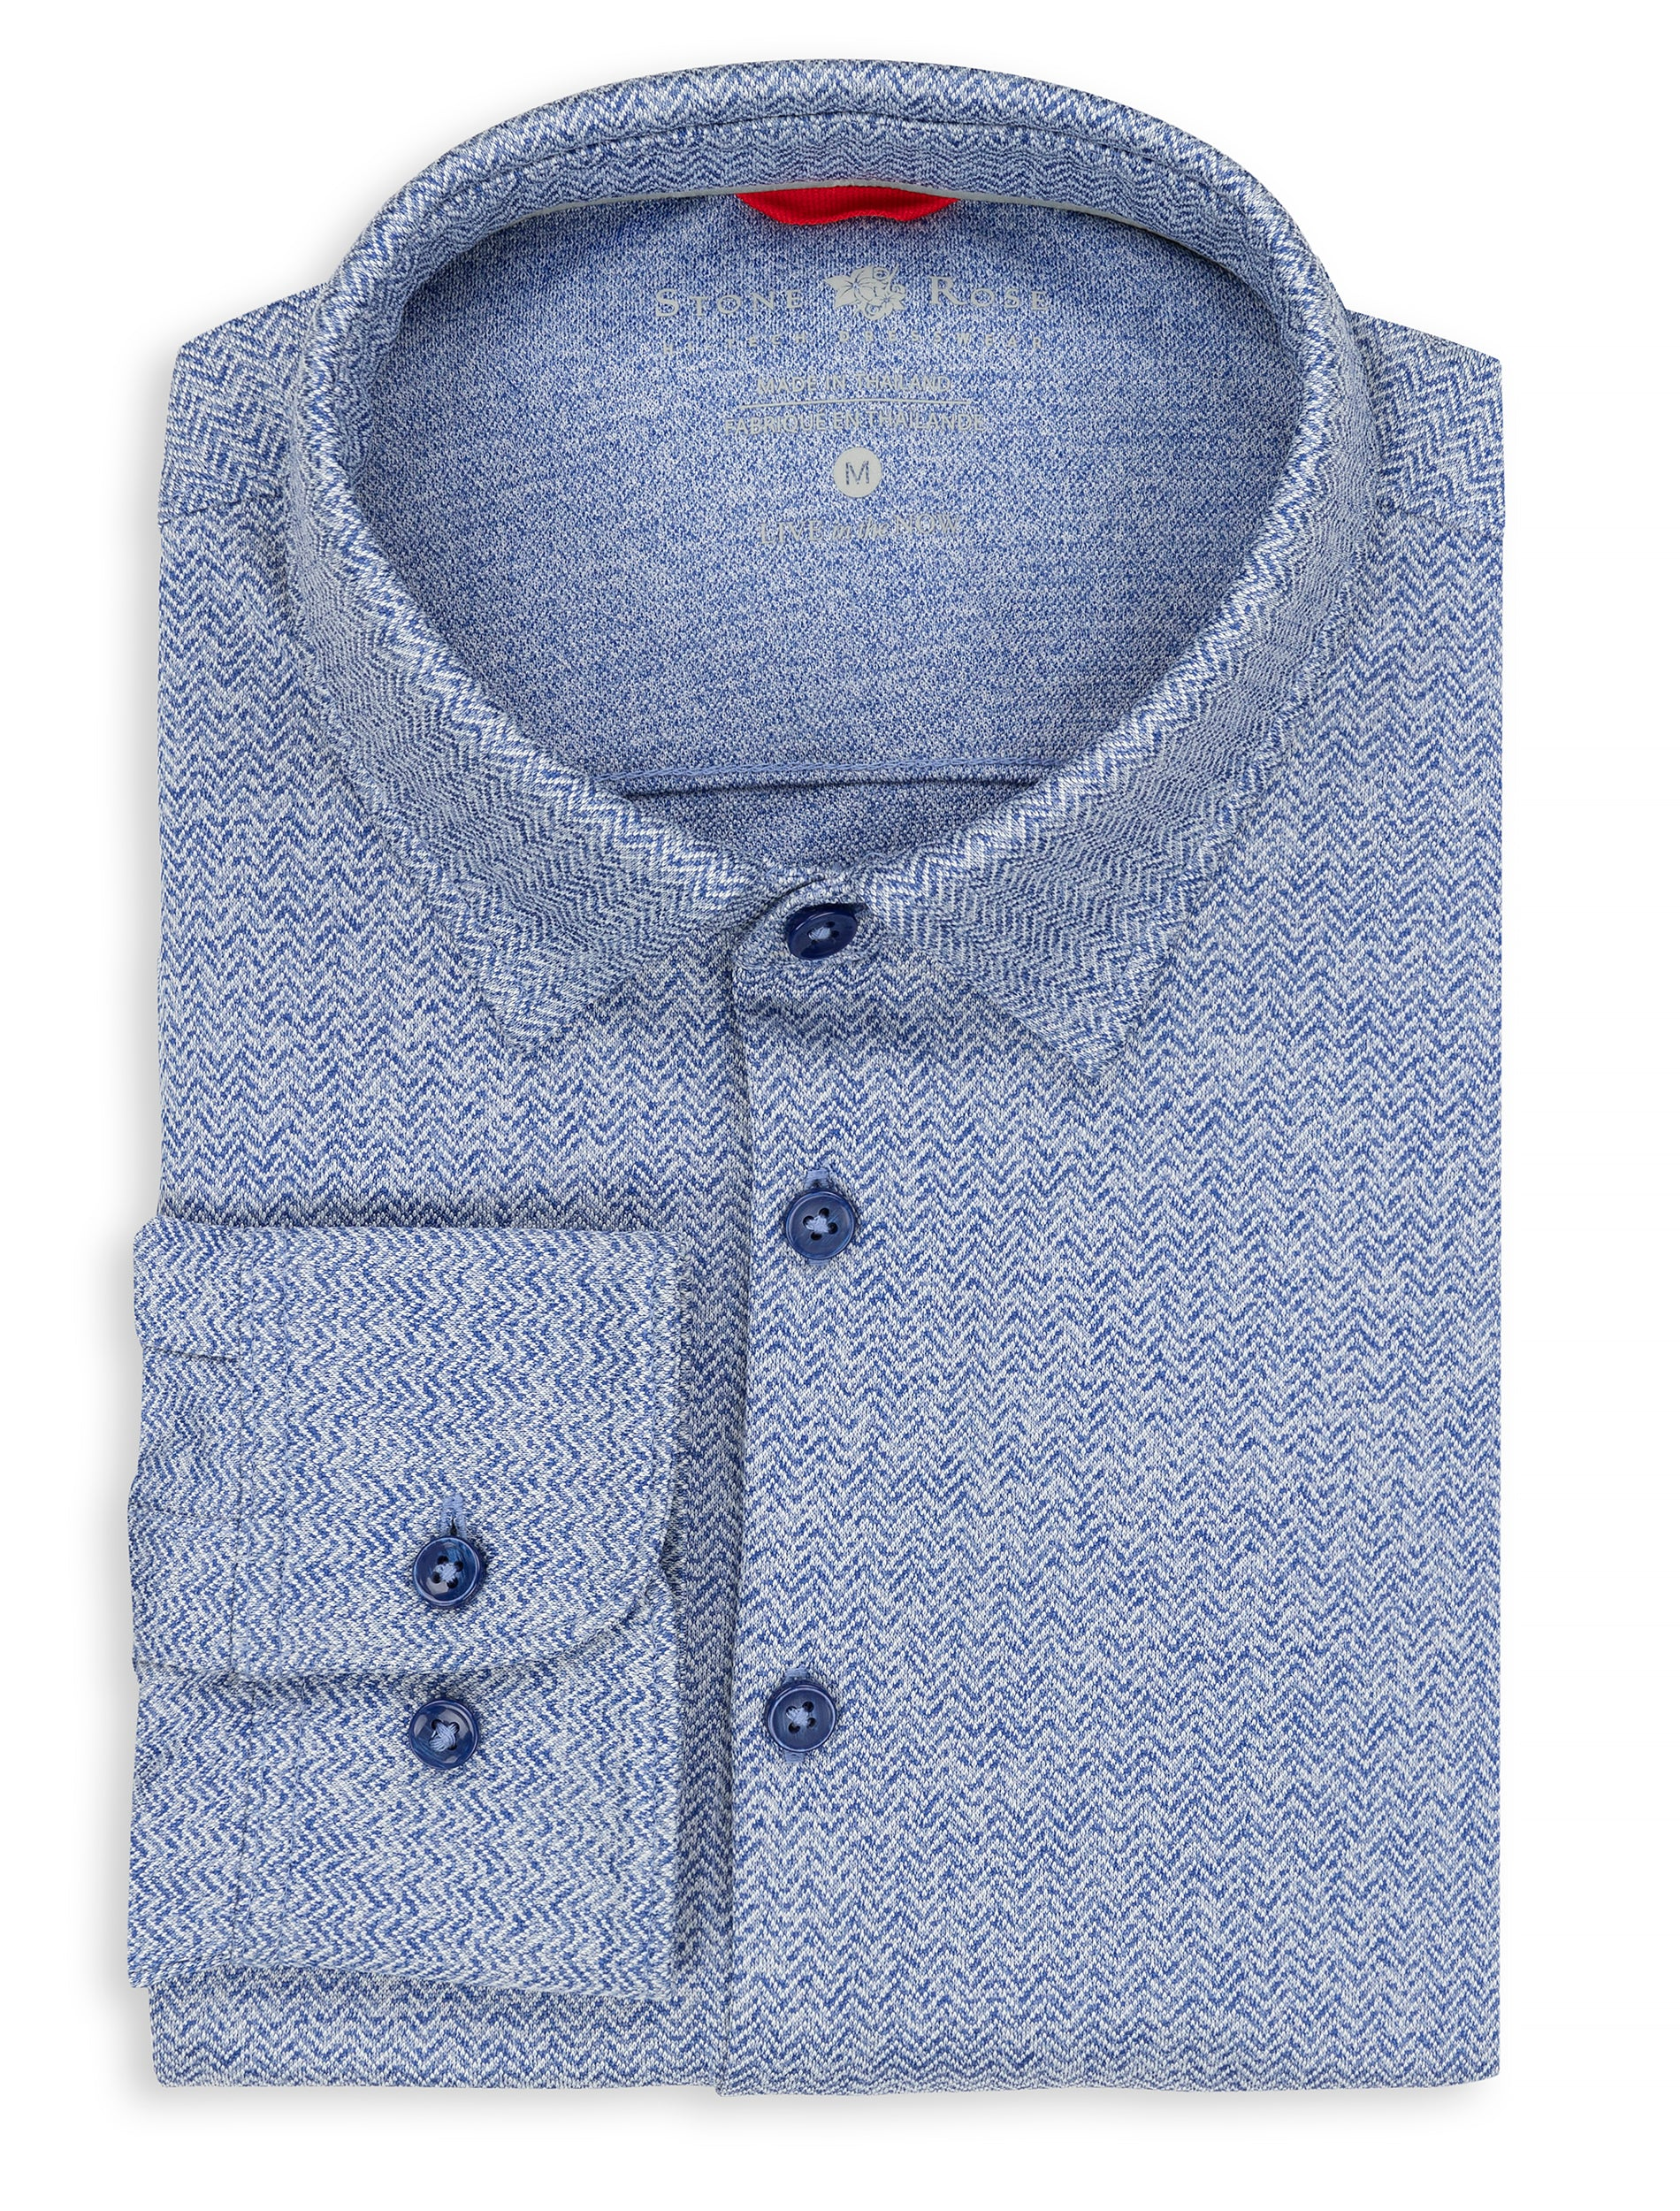 Blue Herringbone Knit Performance Long Sleeve Shirt-Stone Rose